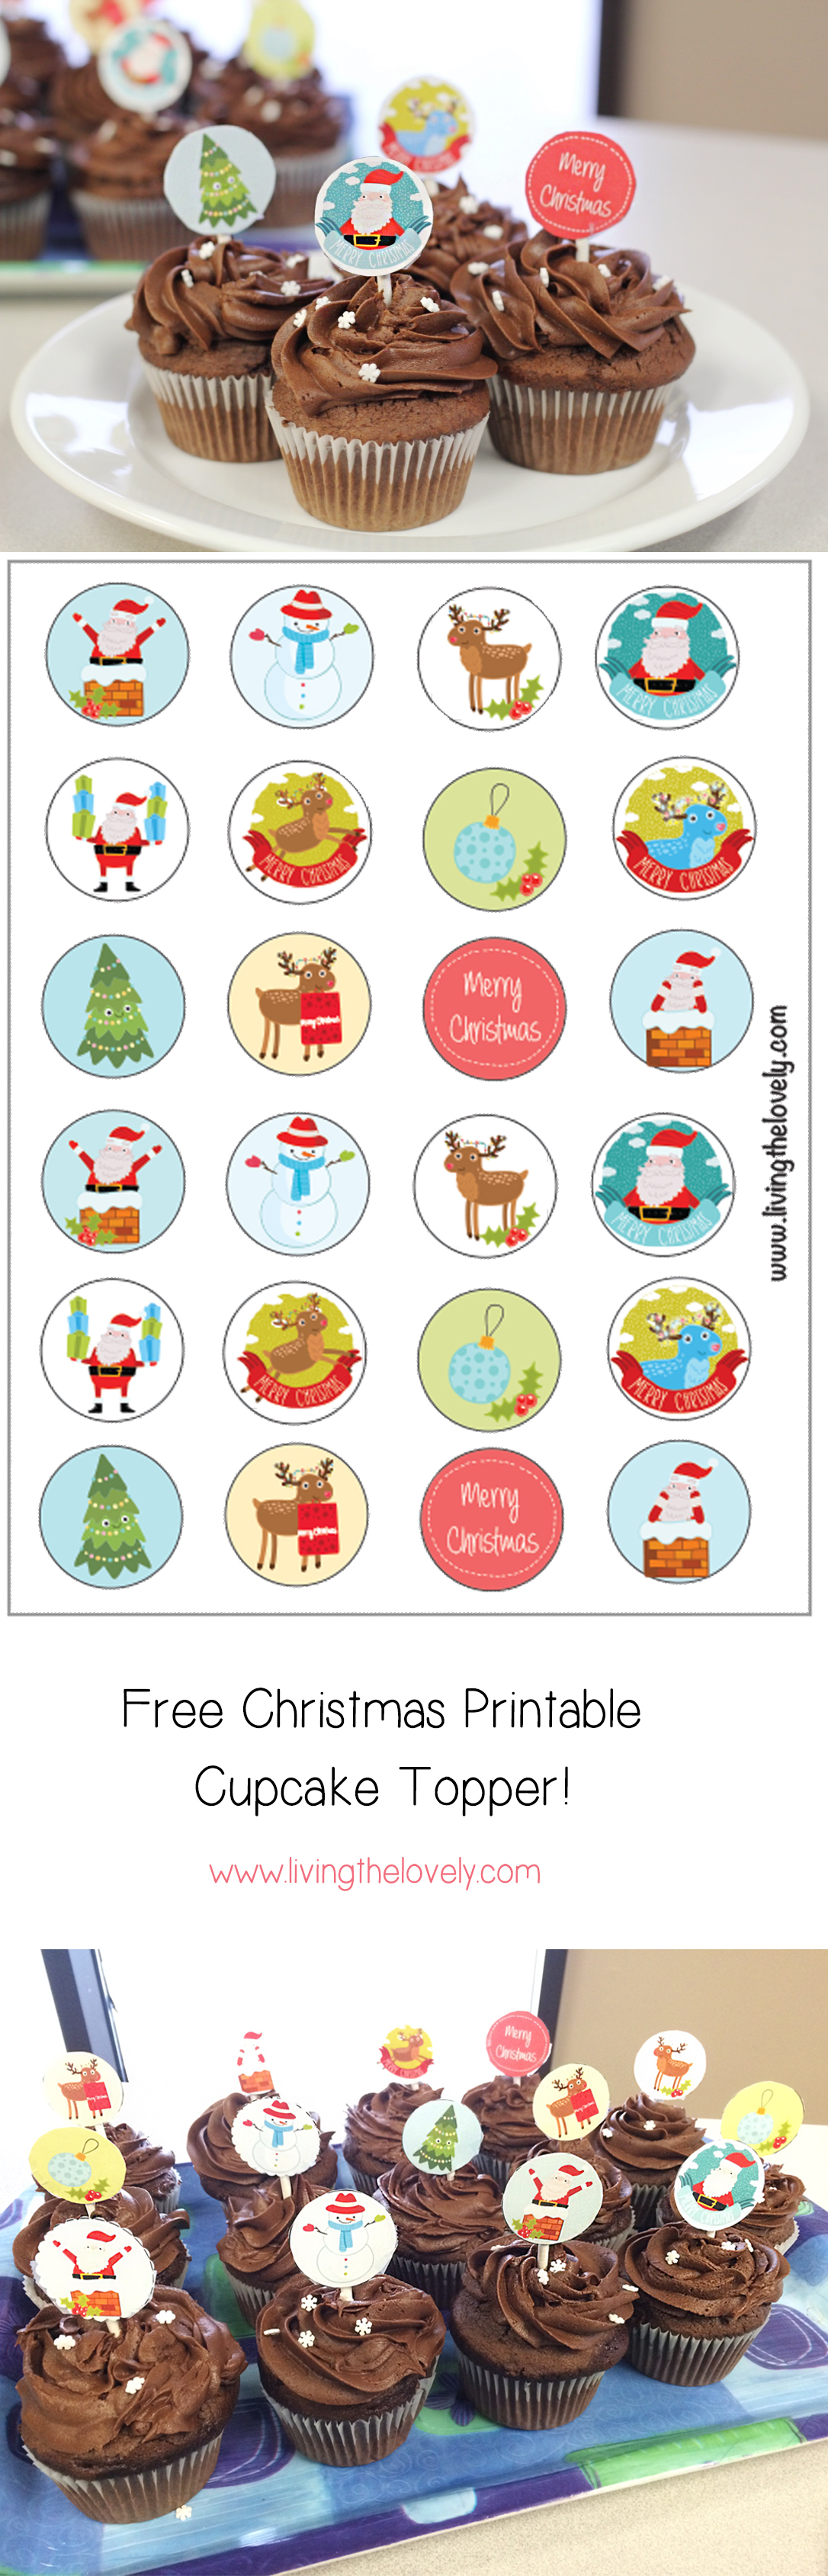 A FREE Christmas Printable! Its a series of super cute christmas themed cupcake toppers you can print at home! Great for a fancy looking treat to take to a Christmas Party!